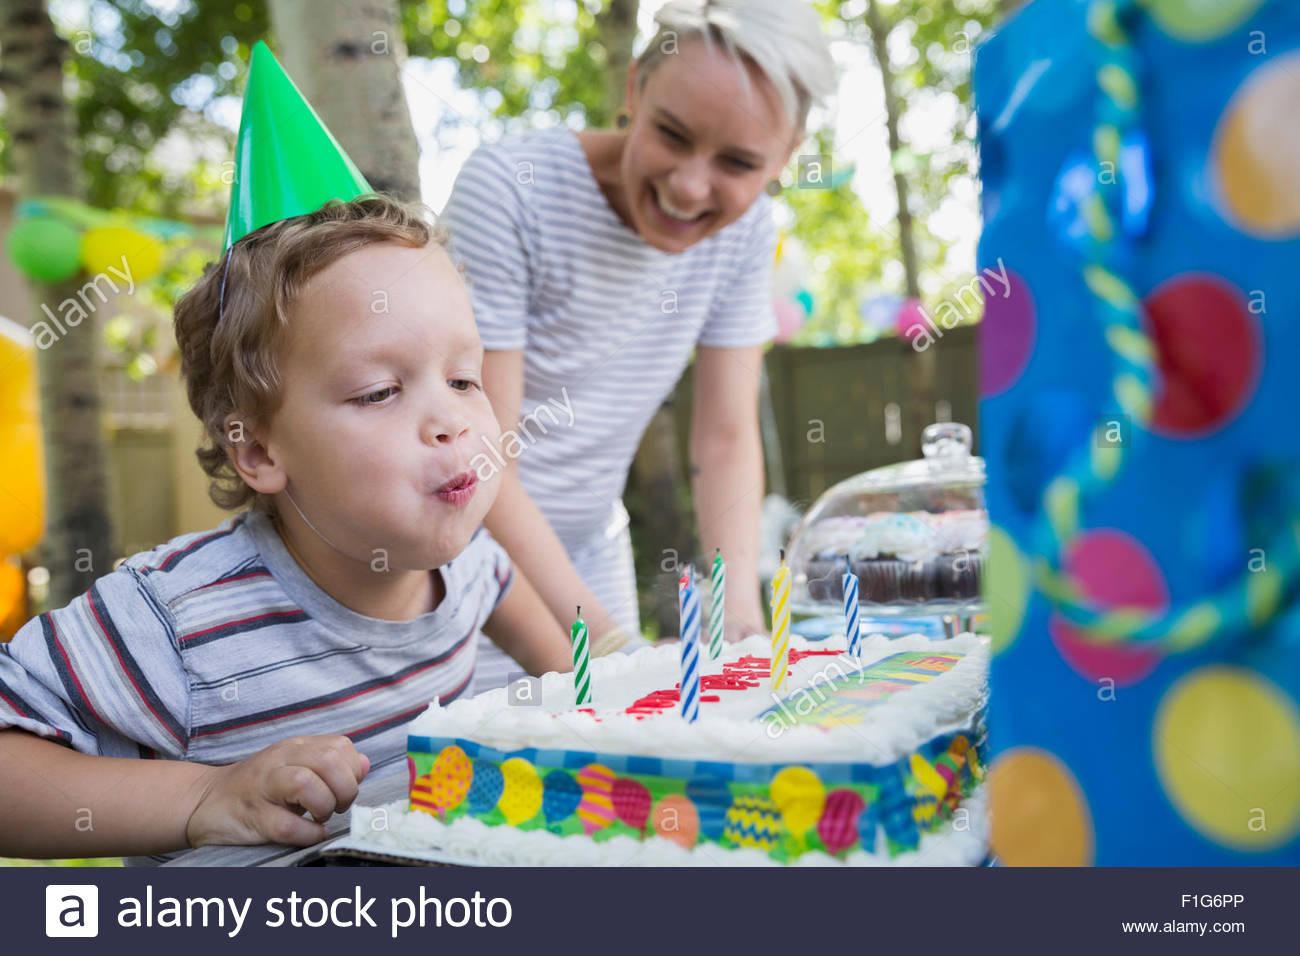 Boy Blowing Out Birthday Candles On Cake Backyard